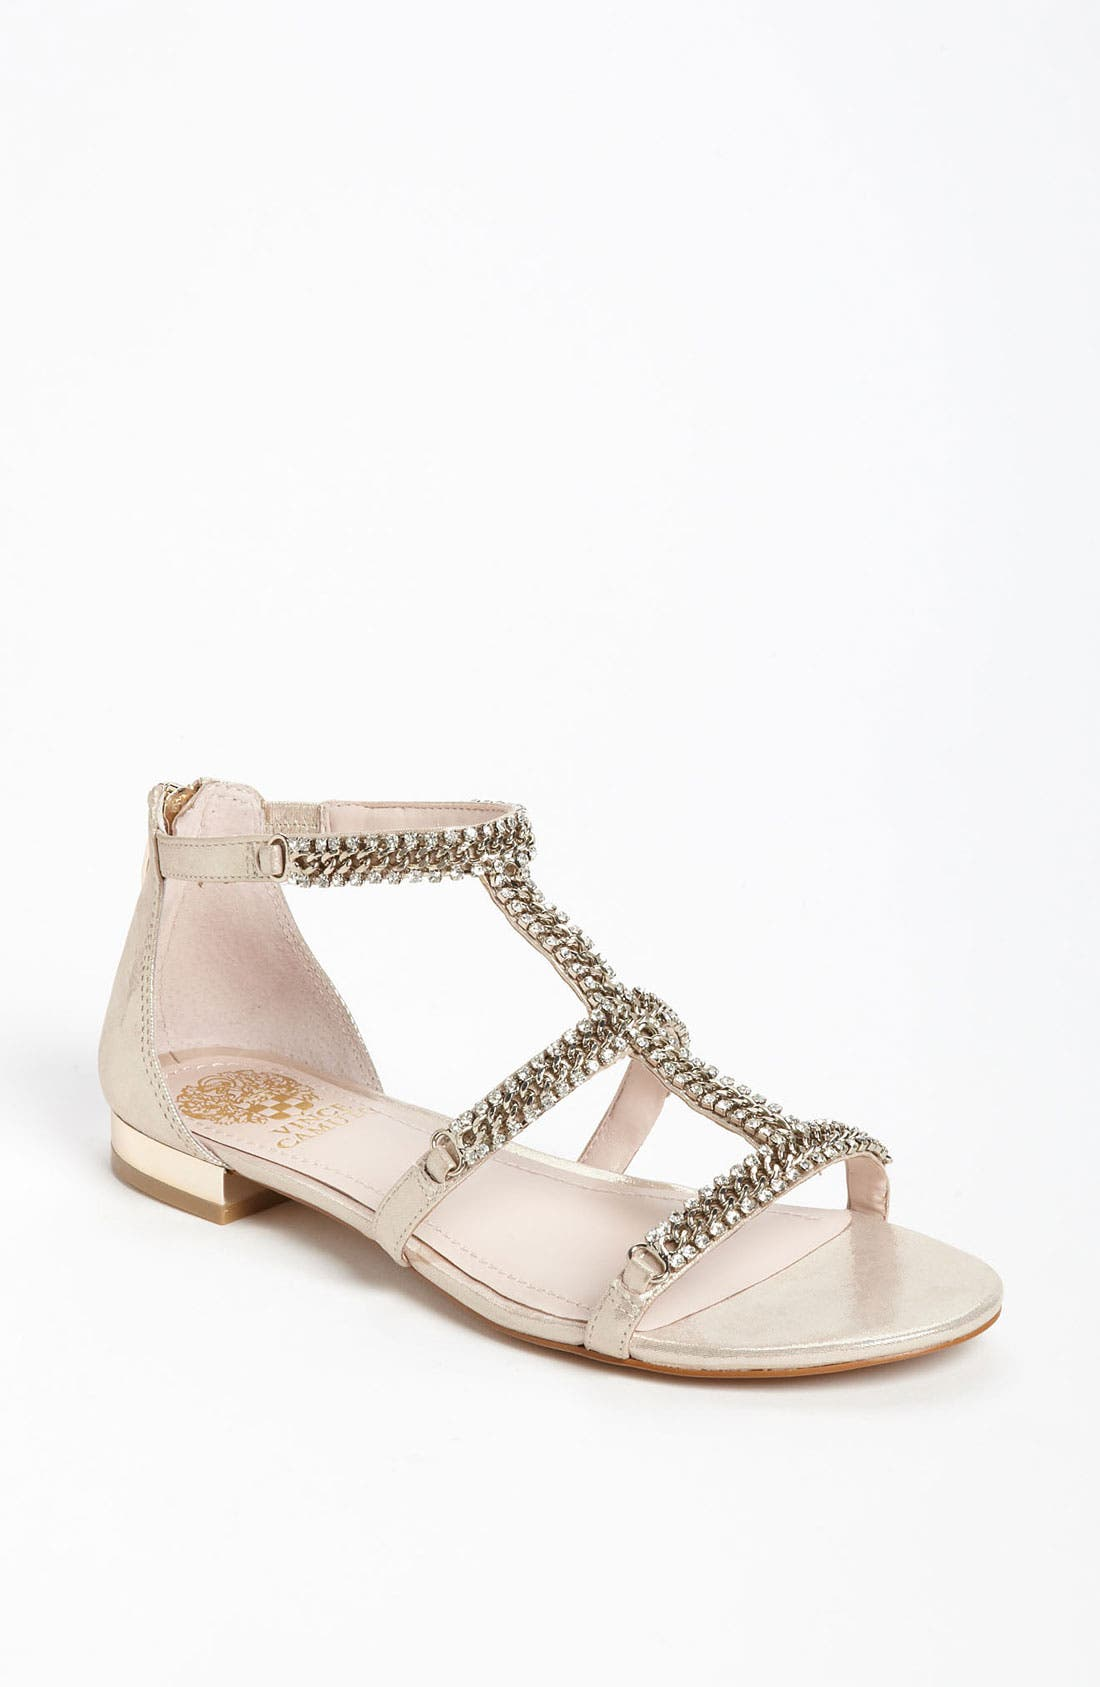 Alternate Image 1 Selected - Vince Camuto 'Hadie' Sandal (Online Only)